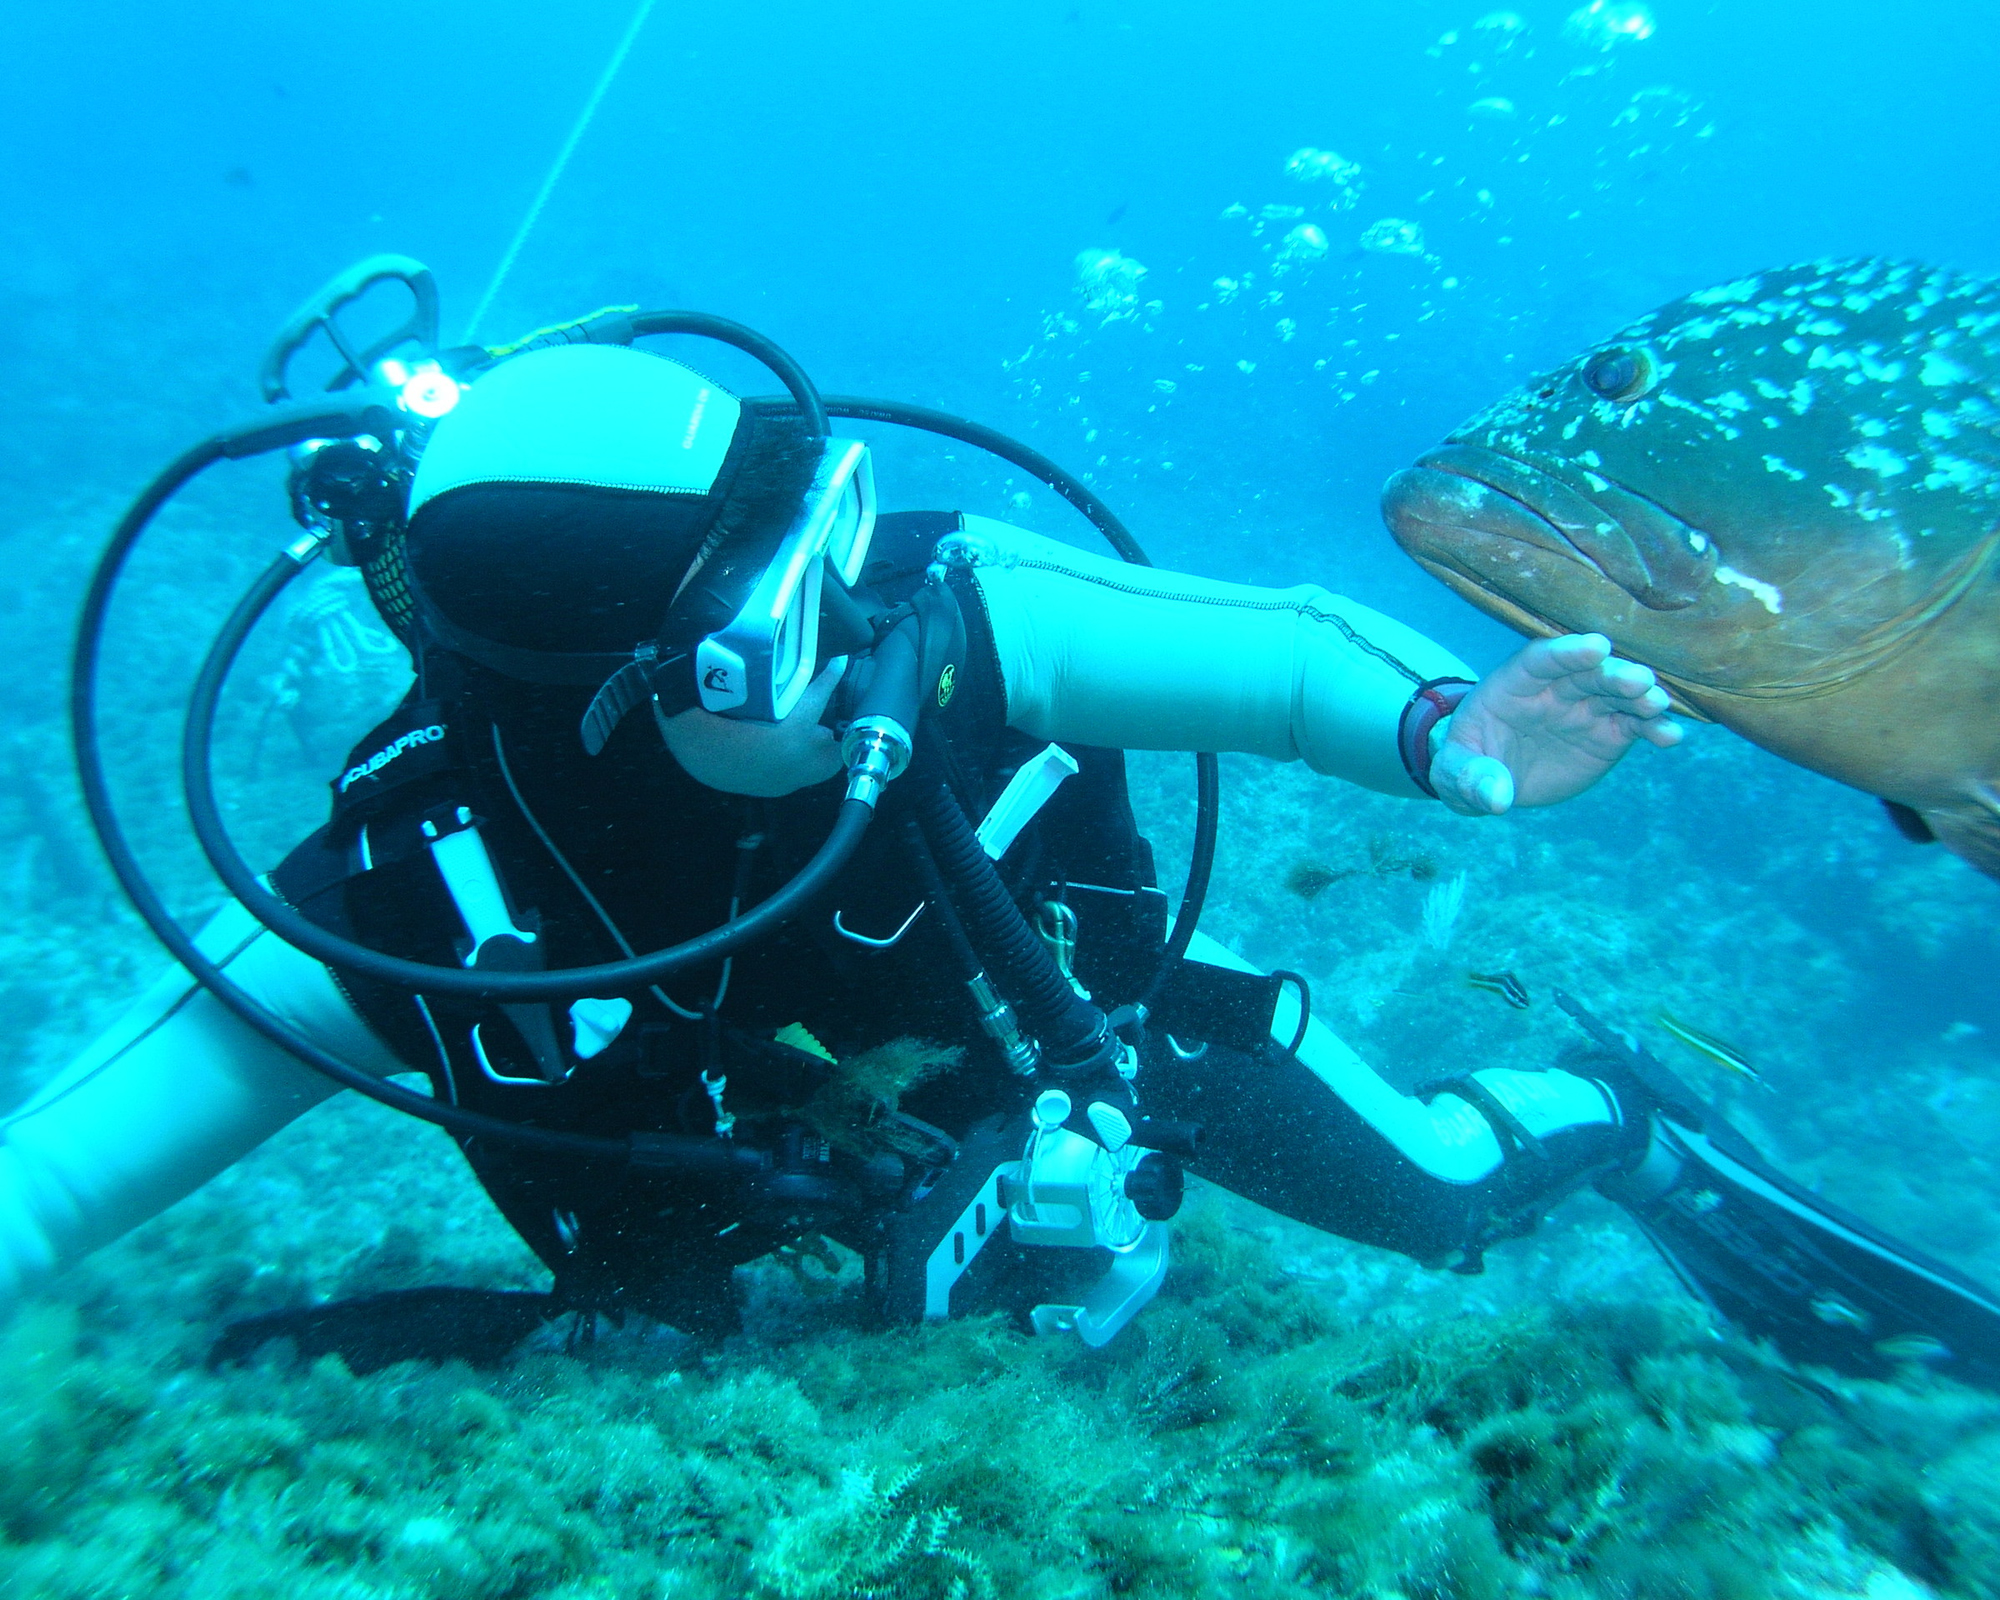 Marbella Design Academy - Enjoy with Water Sports - Scuba Diving